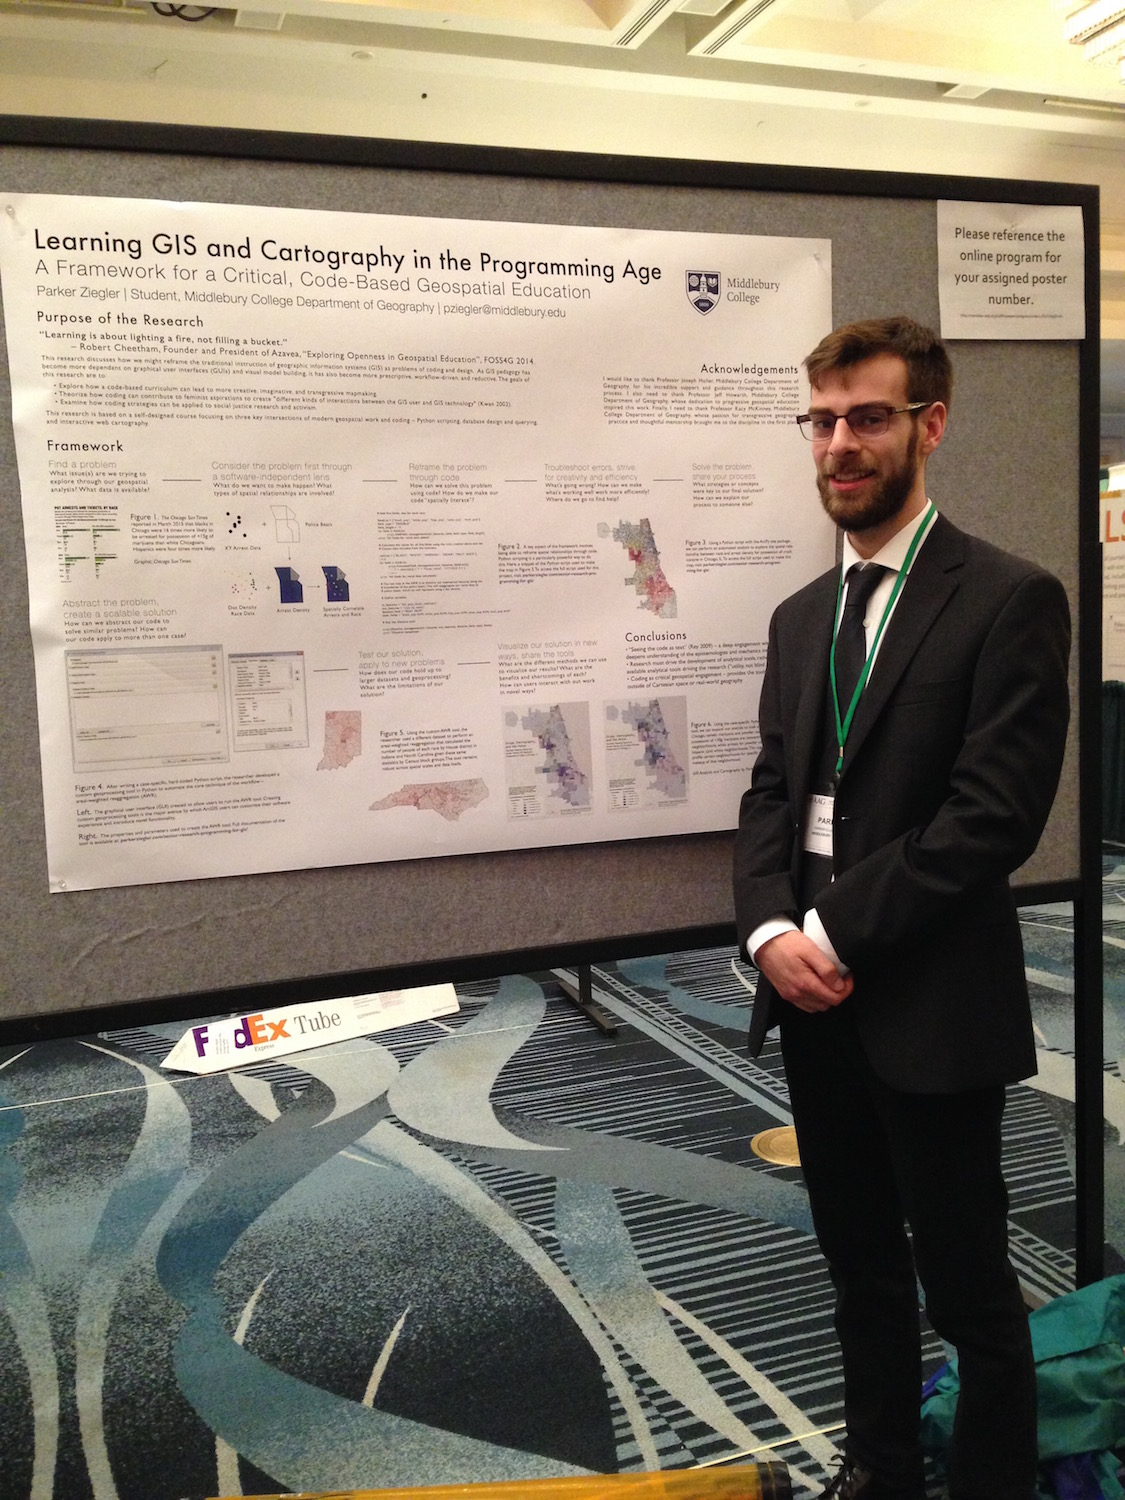 Presenting at AAG 2016 in beautiful San Francisco, CA as part of the GIS & Technology Poster Session.